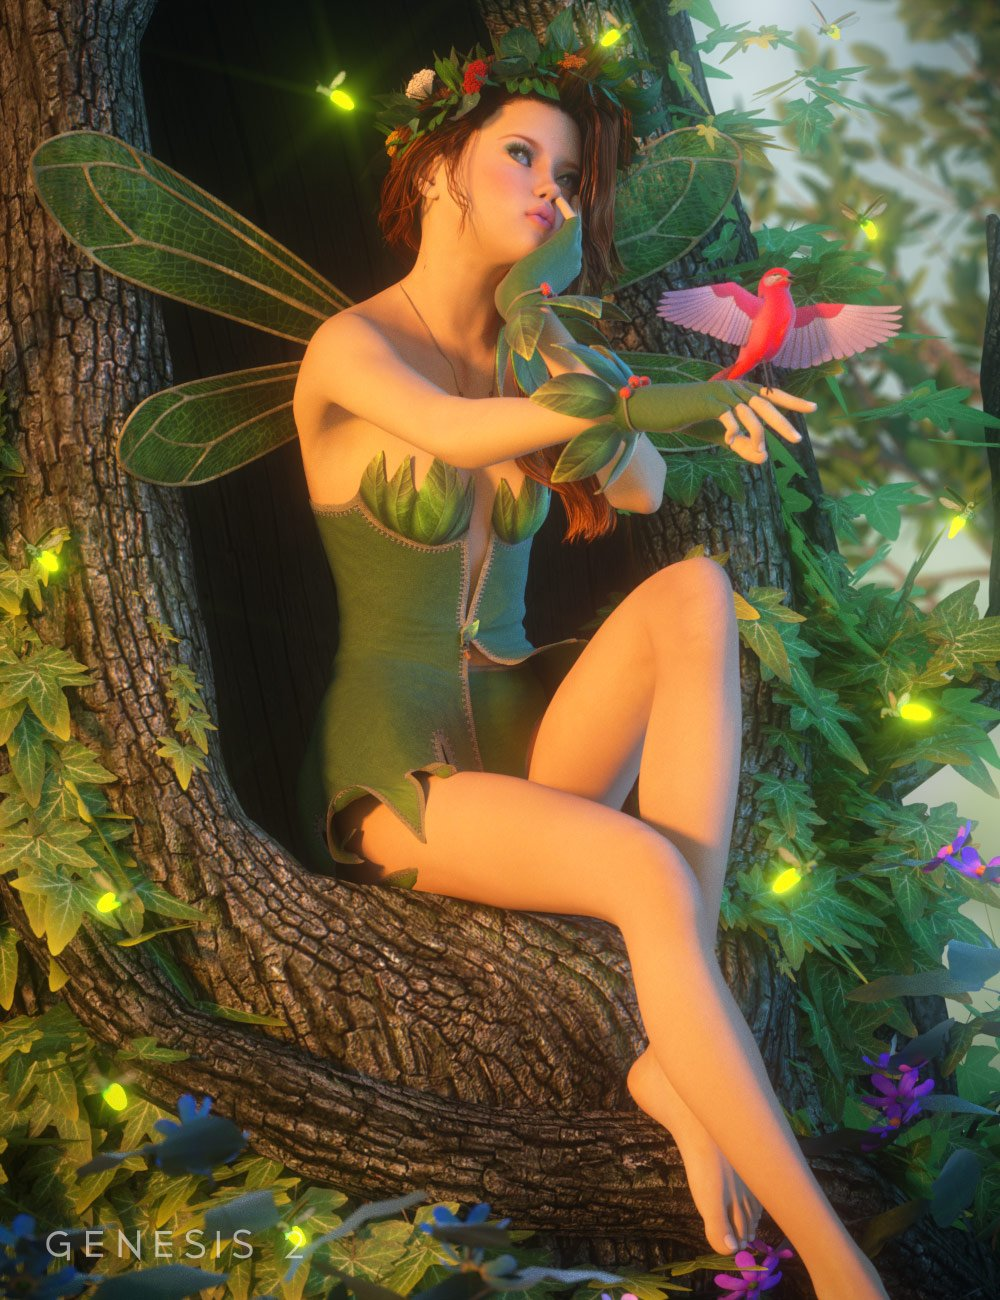 Spriteling for Giselle 6 by: MadaSarsa, 3D Models by Daz 3D